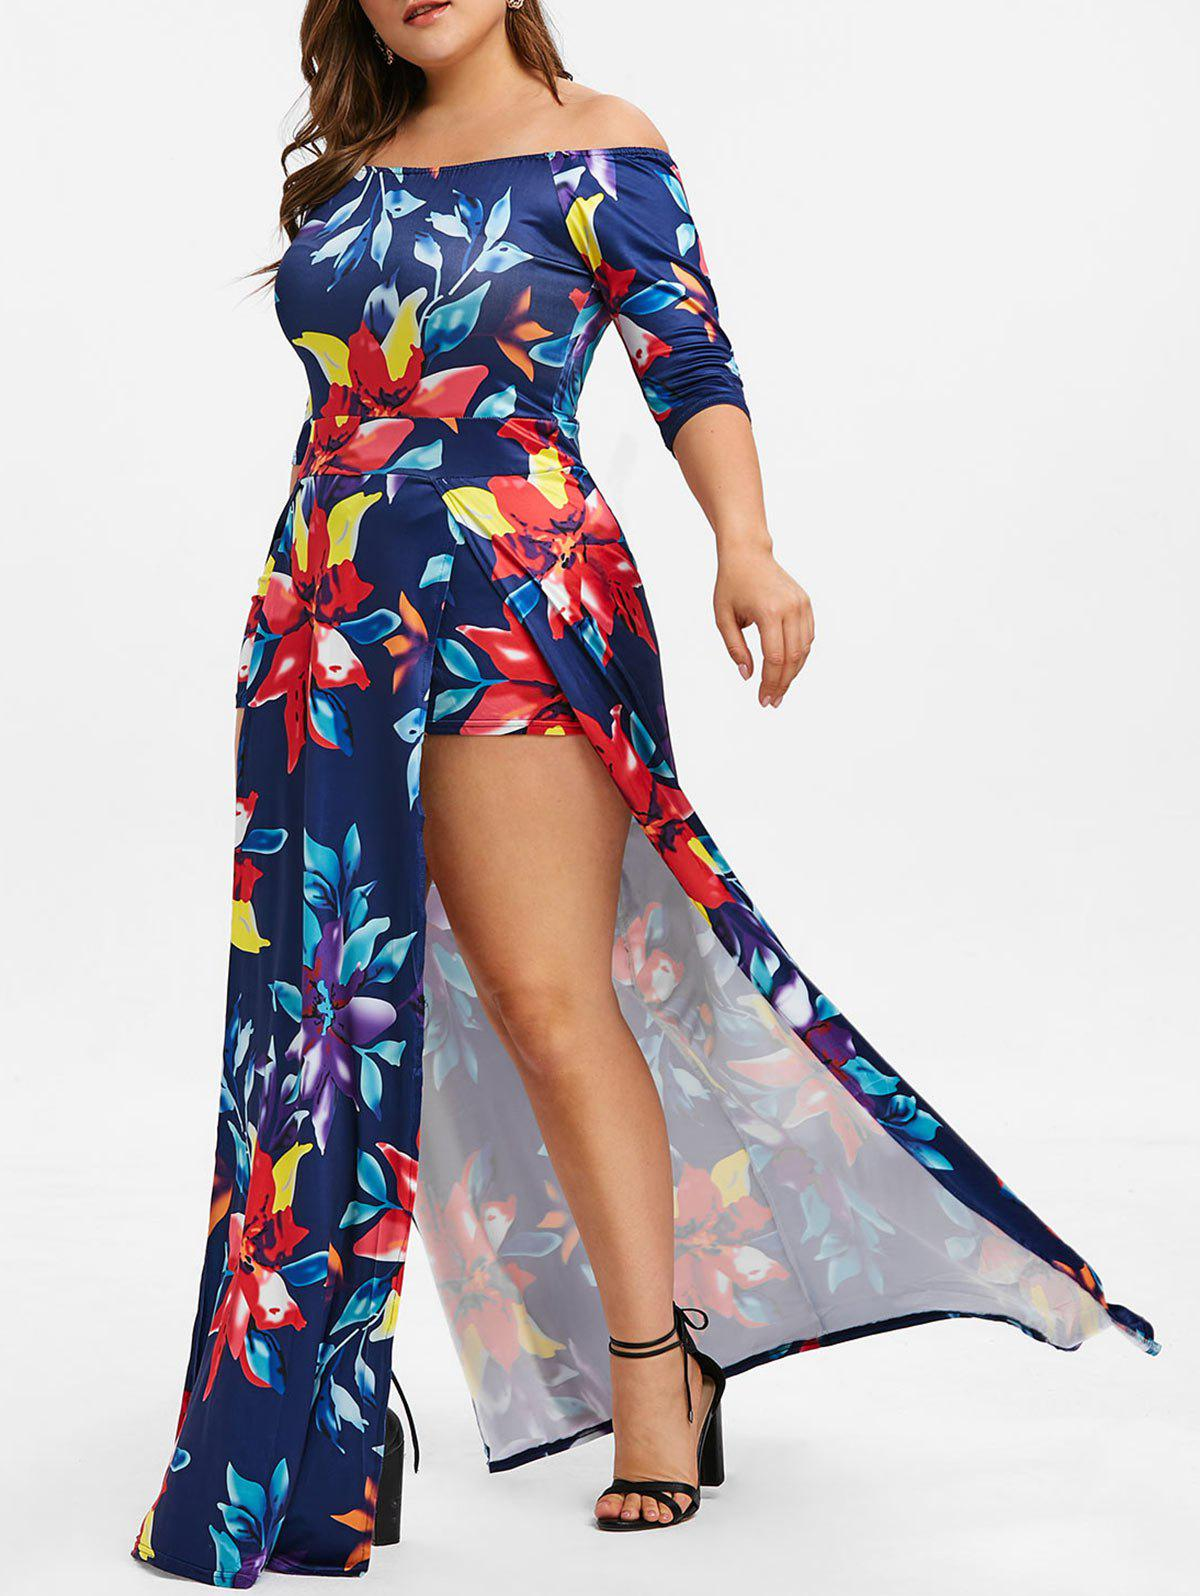 Plus Size Off The Shoulder Floral Print Maxi Romper Dress - DEEP BLUE L